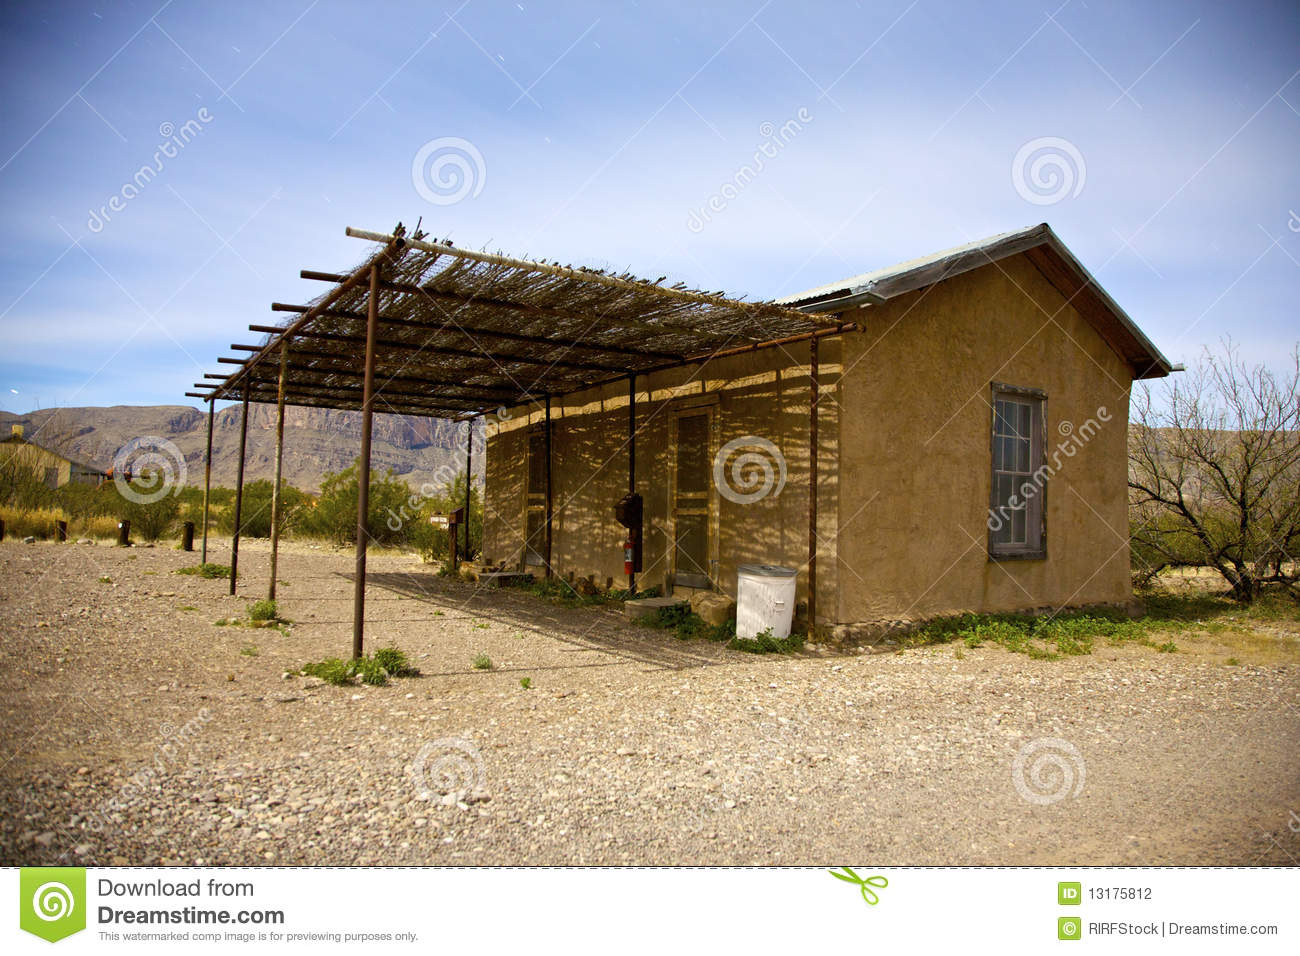 Adobe building stock photography image 13175812 Building an adobe house